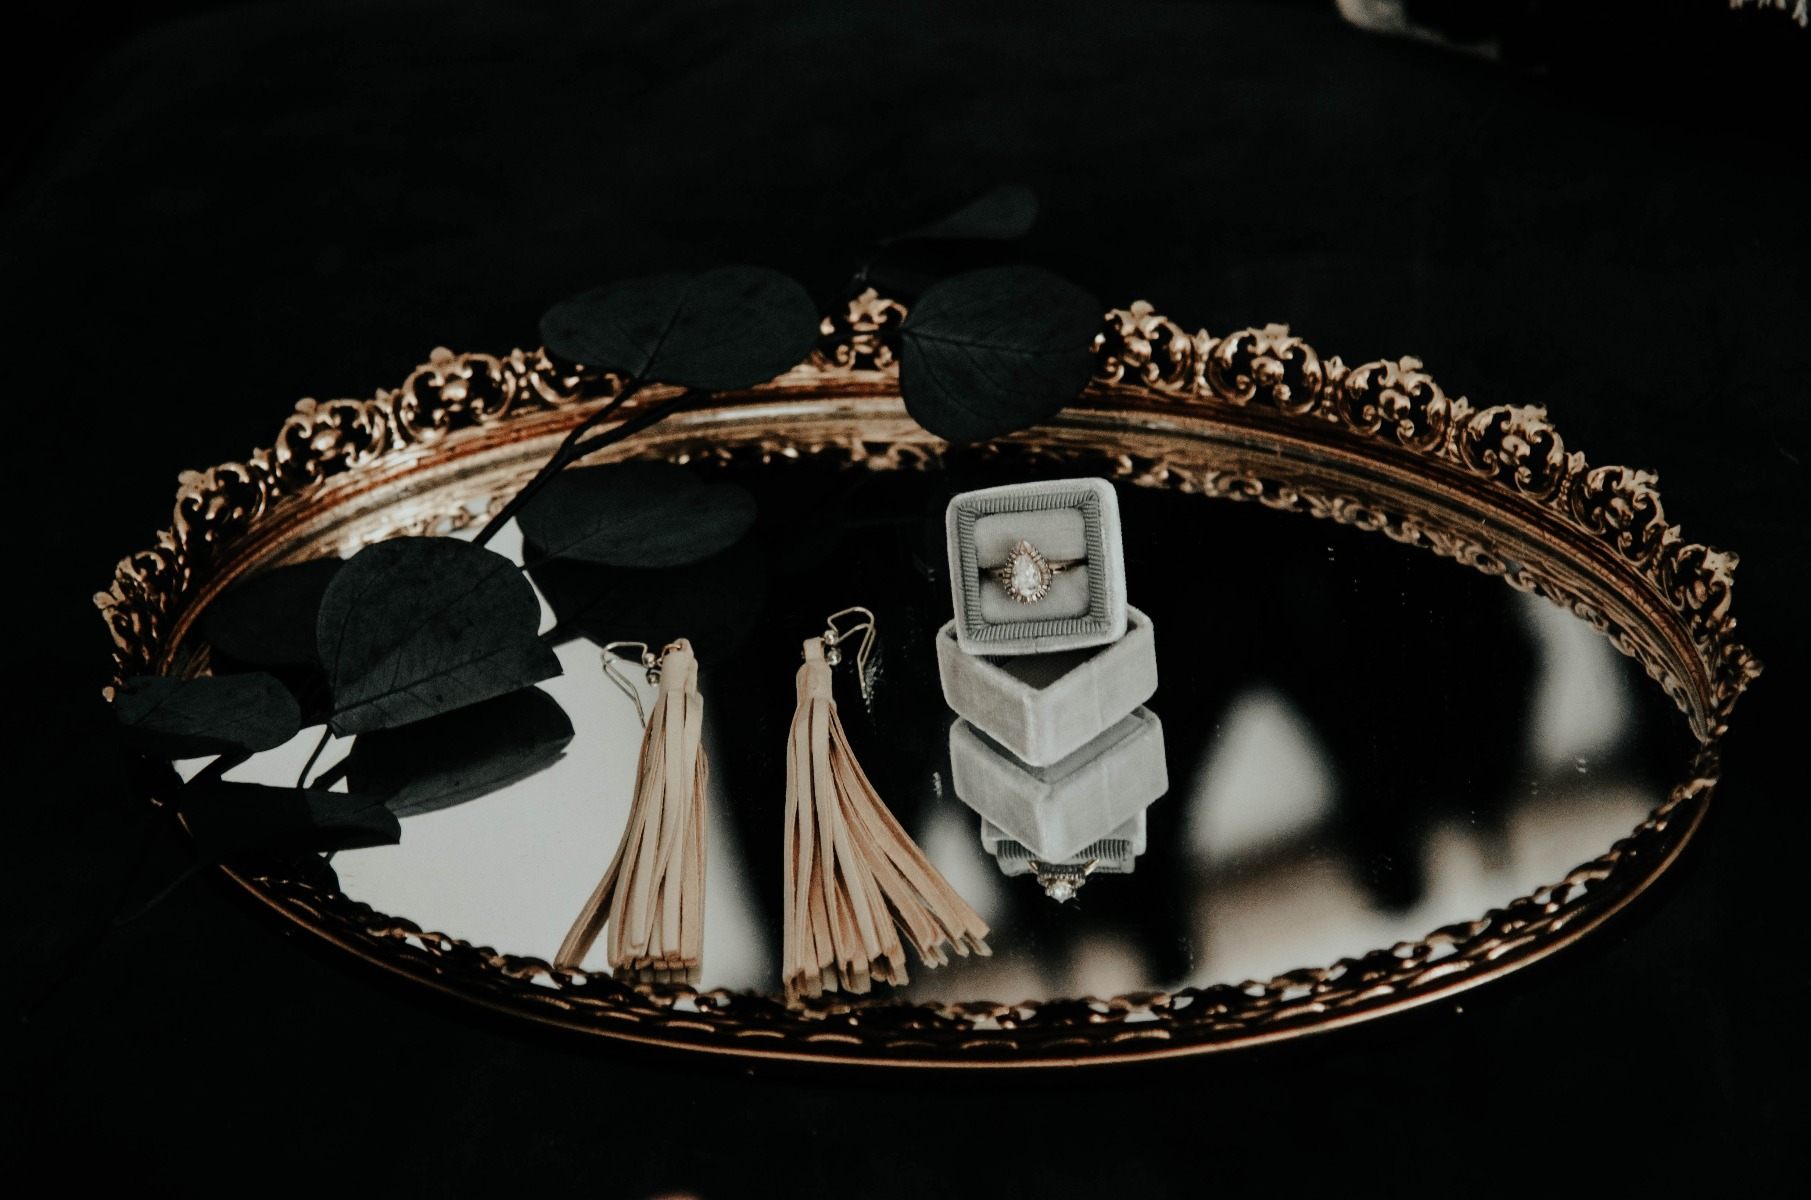 Engagement ring on a vanity mirror tray